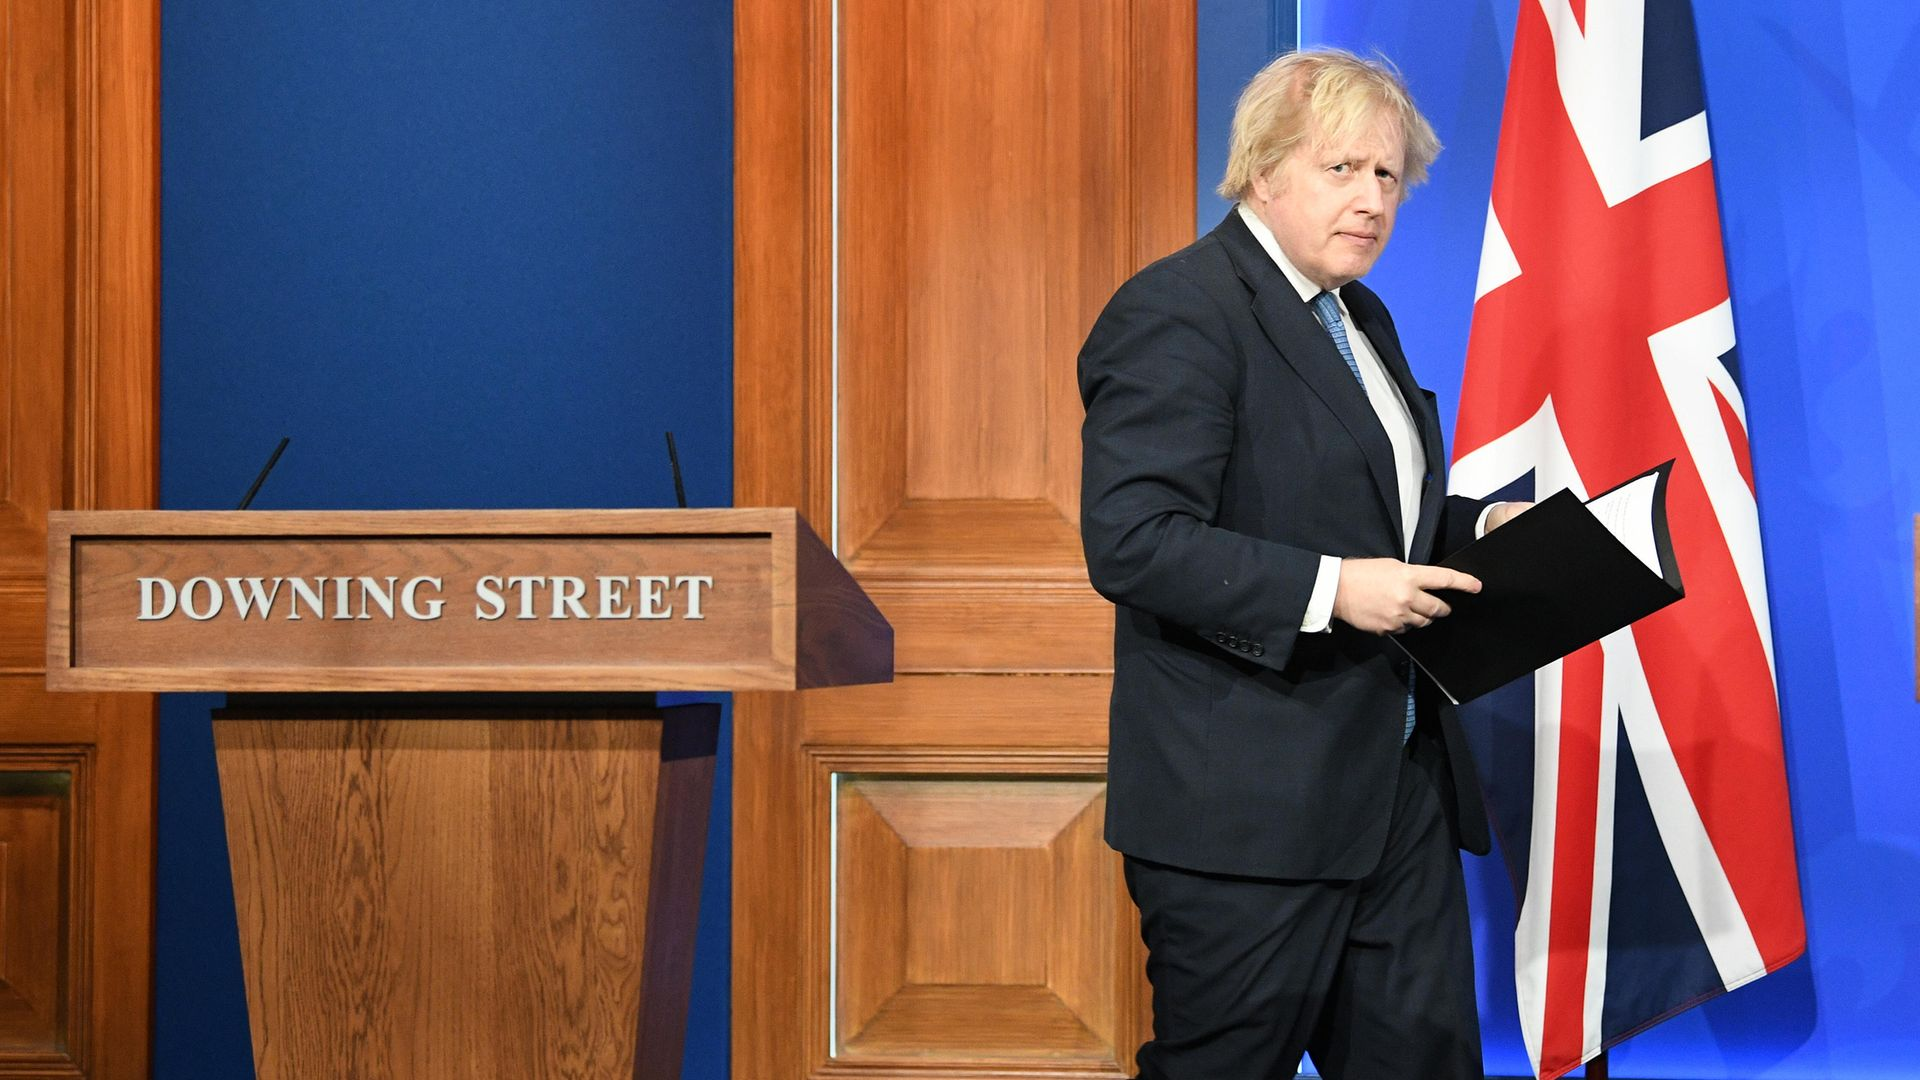 Prime Minister Boris Johnson, arrives for a media briefing in Downing Street, London, on coronavirus (Covid-19). Picture date: Monday April 5, 2021. - Credit: PA